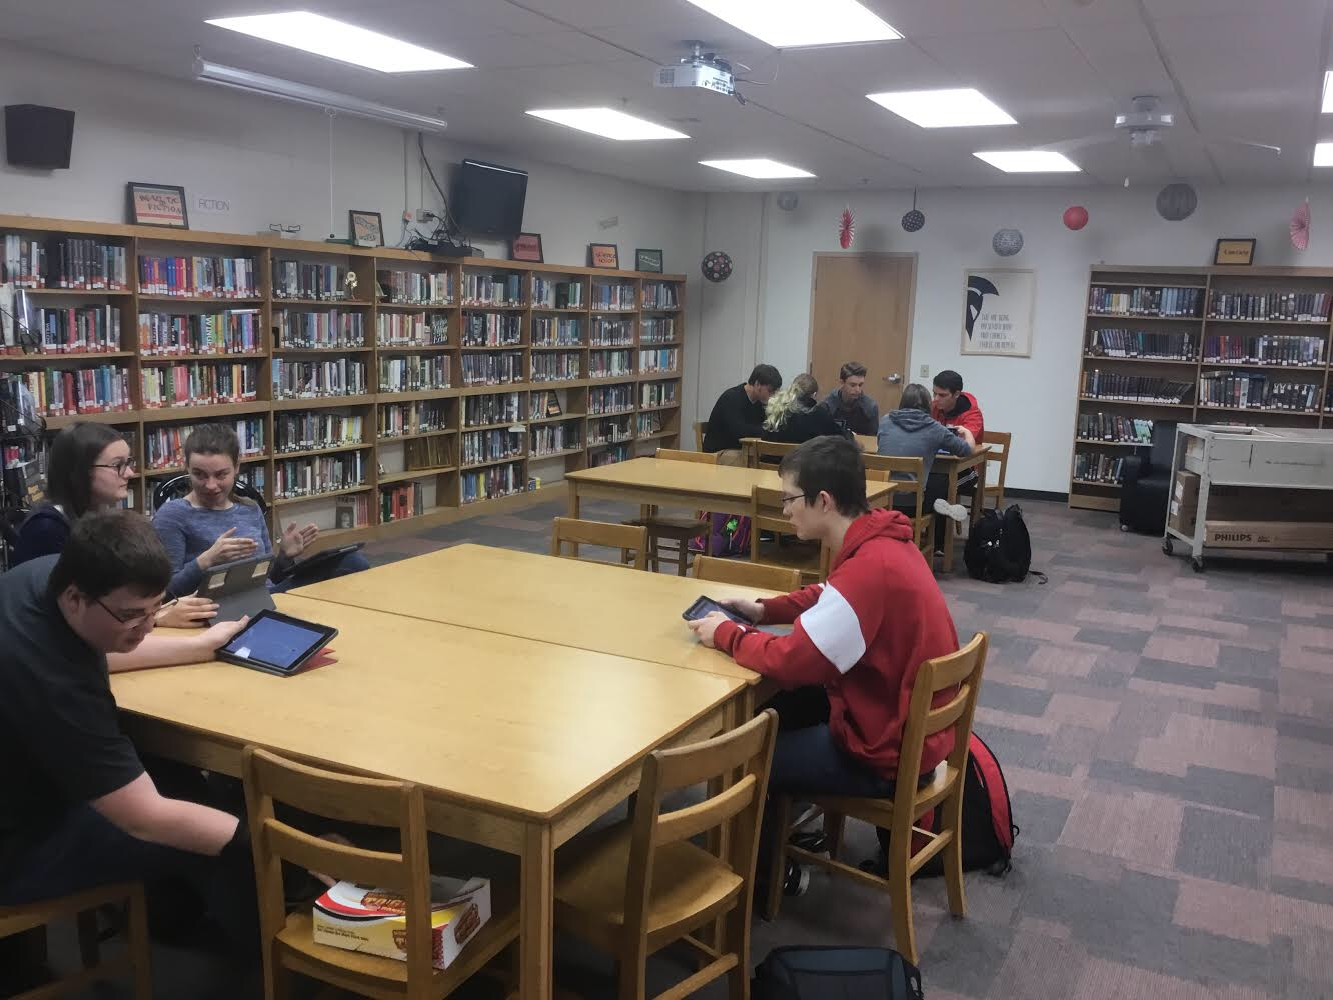 Platteview's two FPS teams, the sophomore group and the junior/senior group, sit together while discussing the problem at hand and enjoying donuts. Most of the group are veterans from last year, but they've expounded their wisdom to the new members.